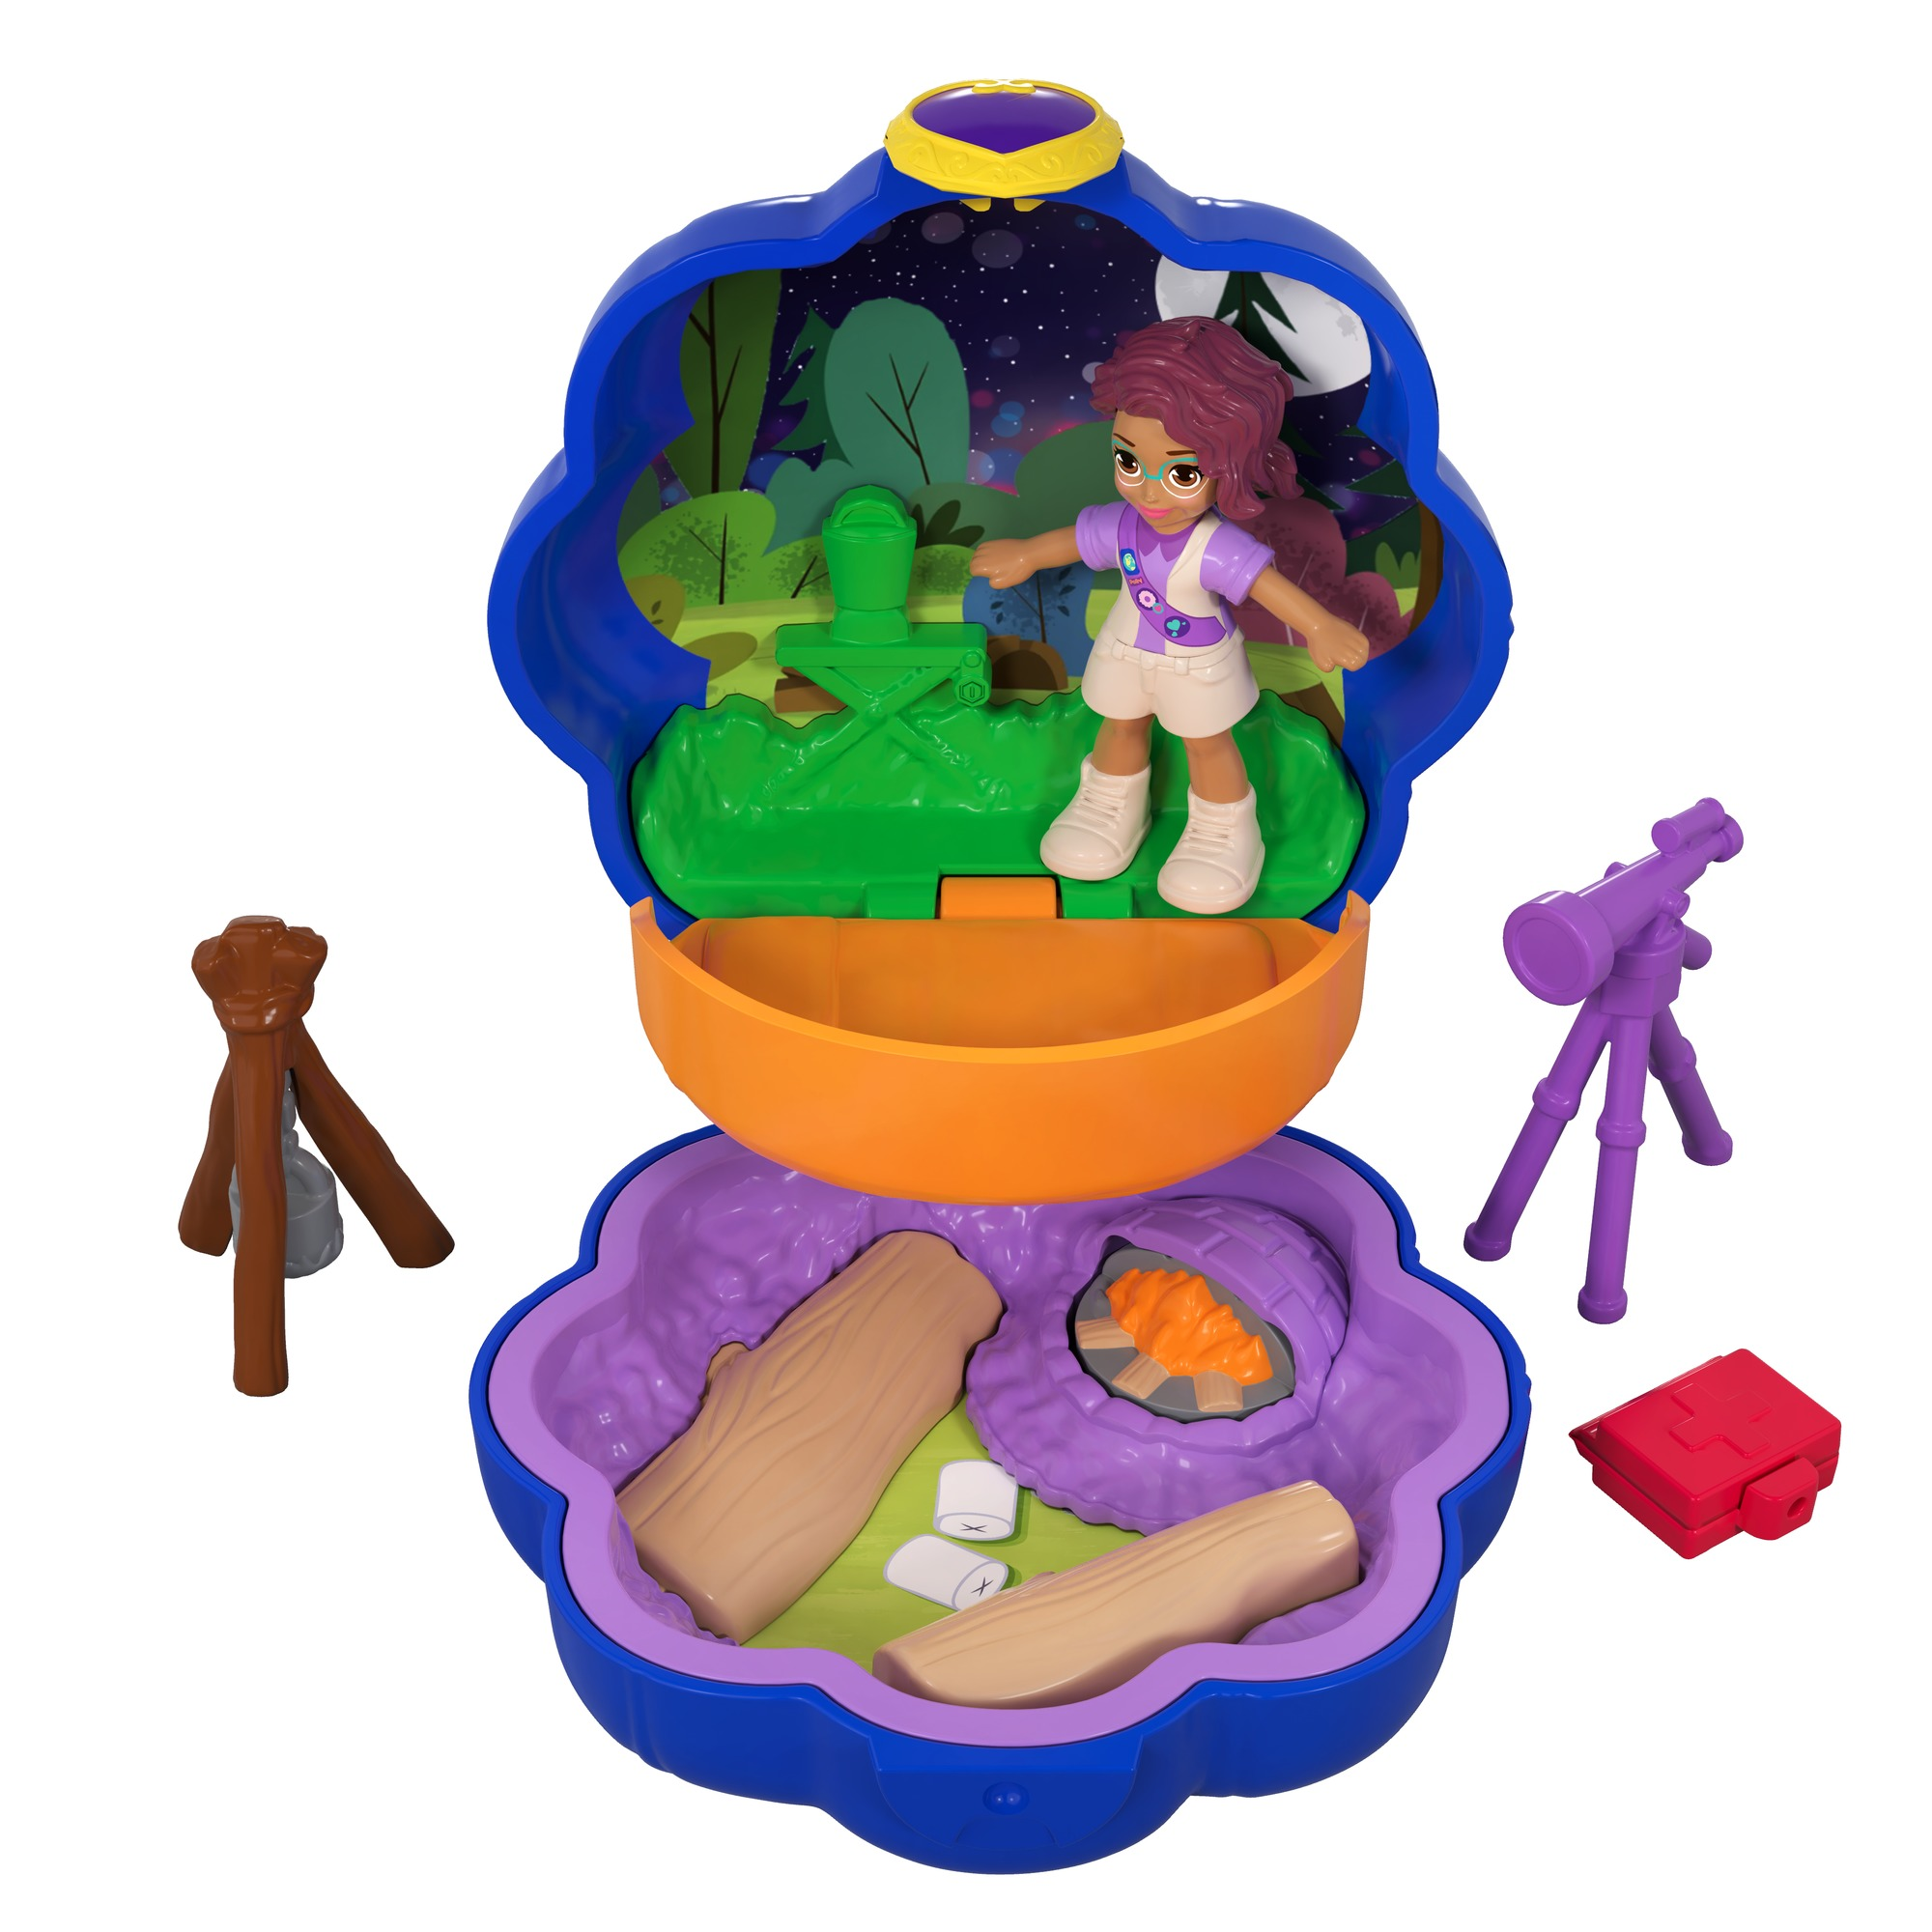 Polly Pocket Tiny Pocket Places Picnic Compact with Shani Doll